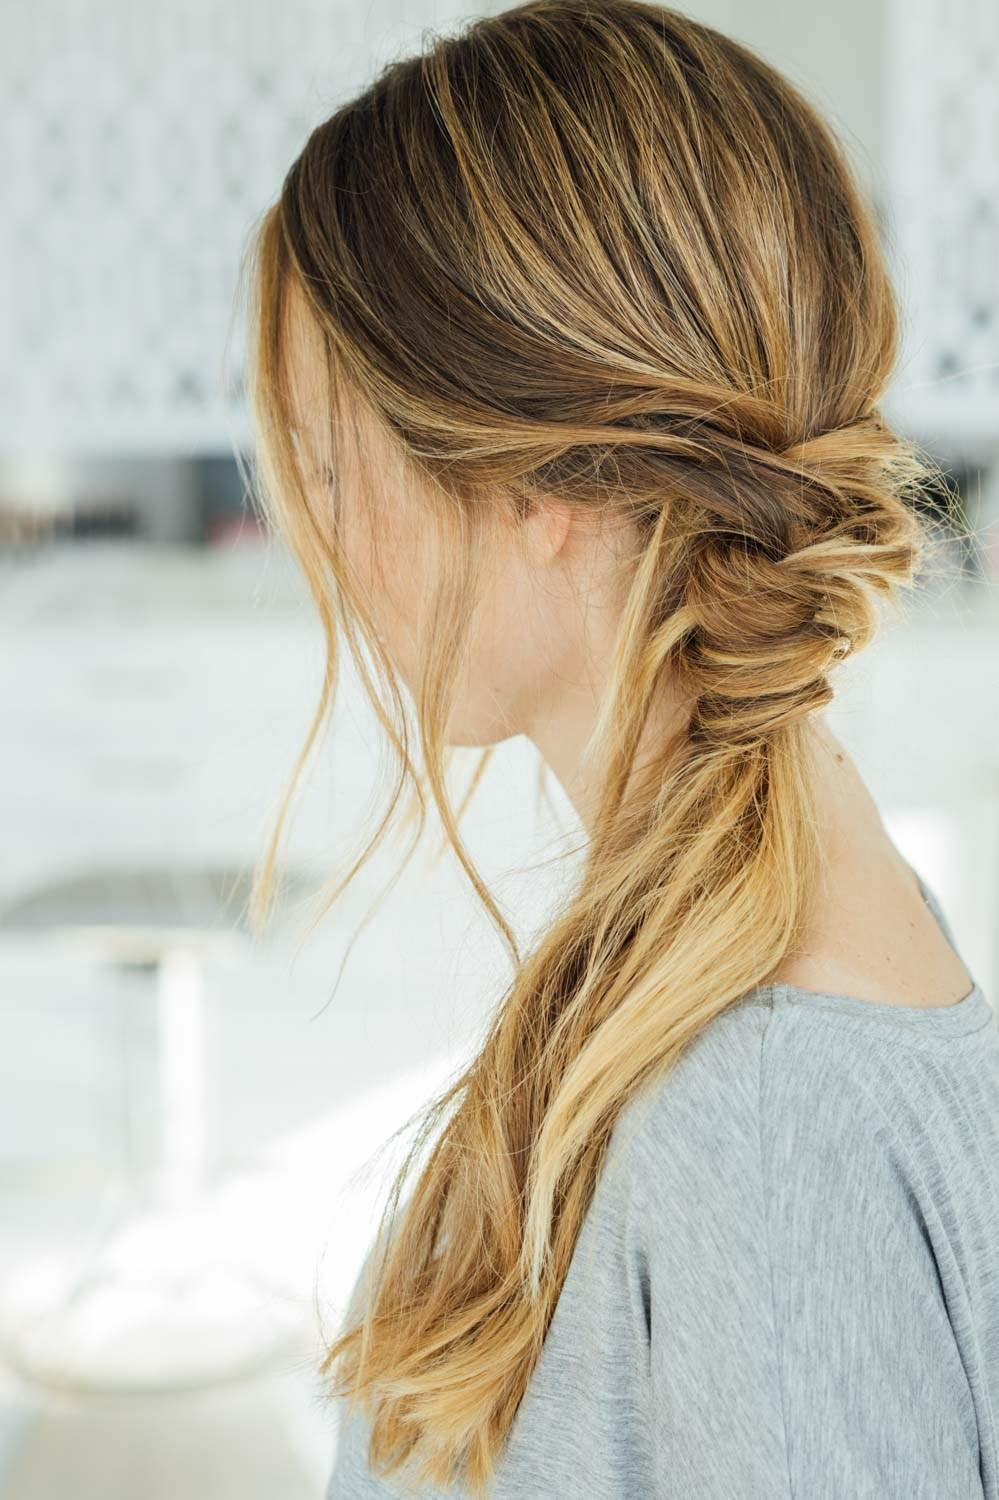 New 16 Easy Hairstyles For Hot Summer Days The Everygirl Ideas With Pictures